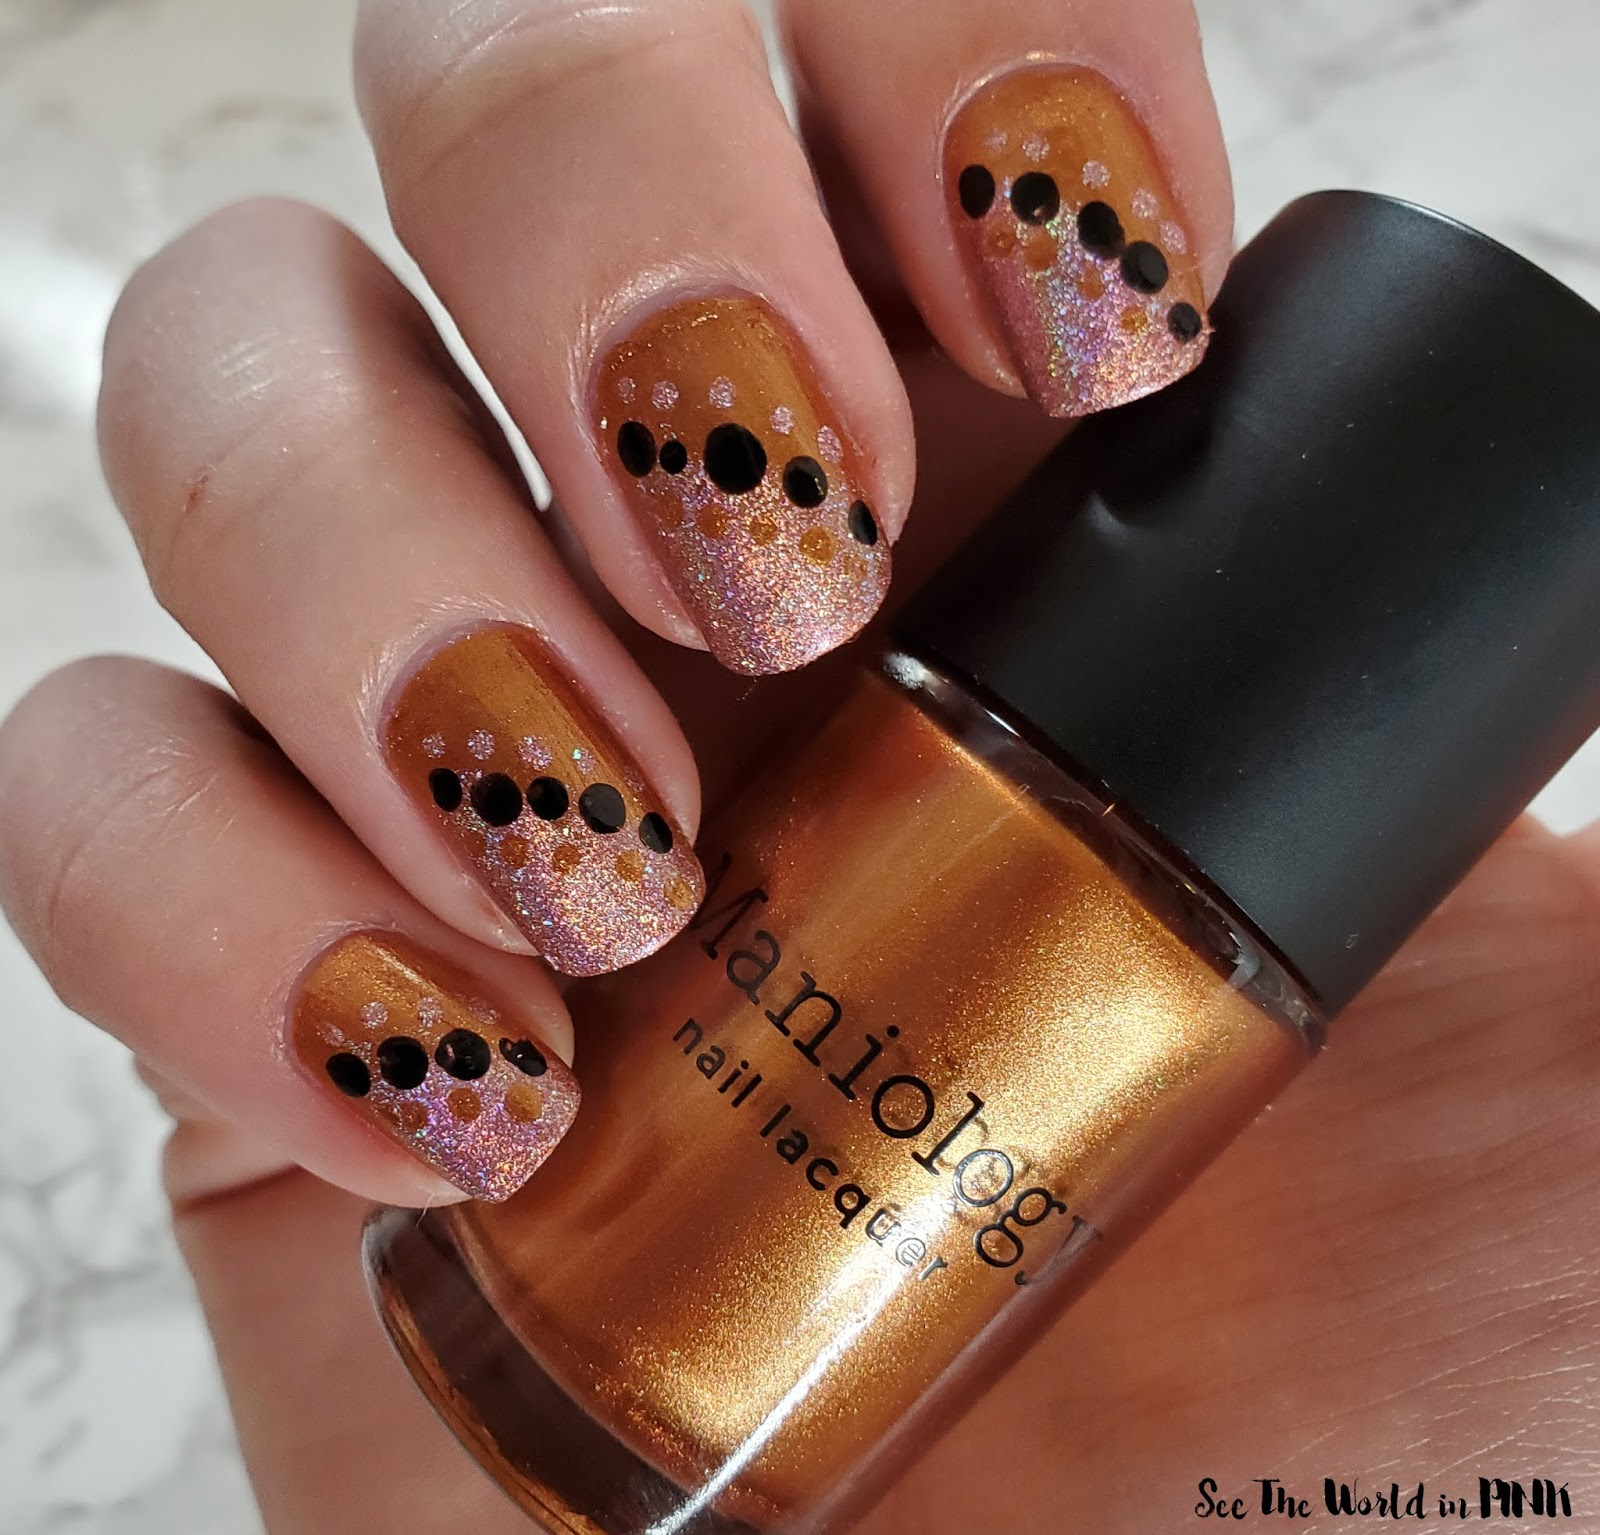 Manicure Monday - Spiced Fall Nails